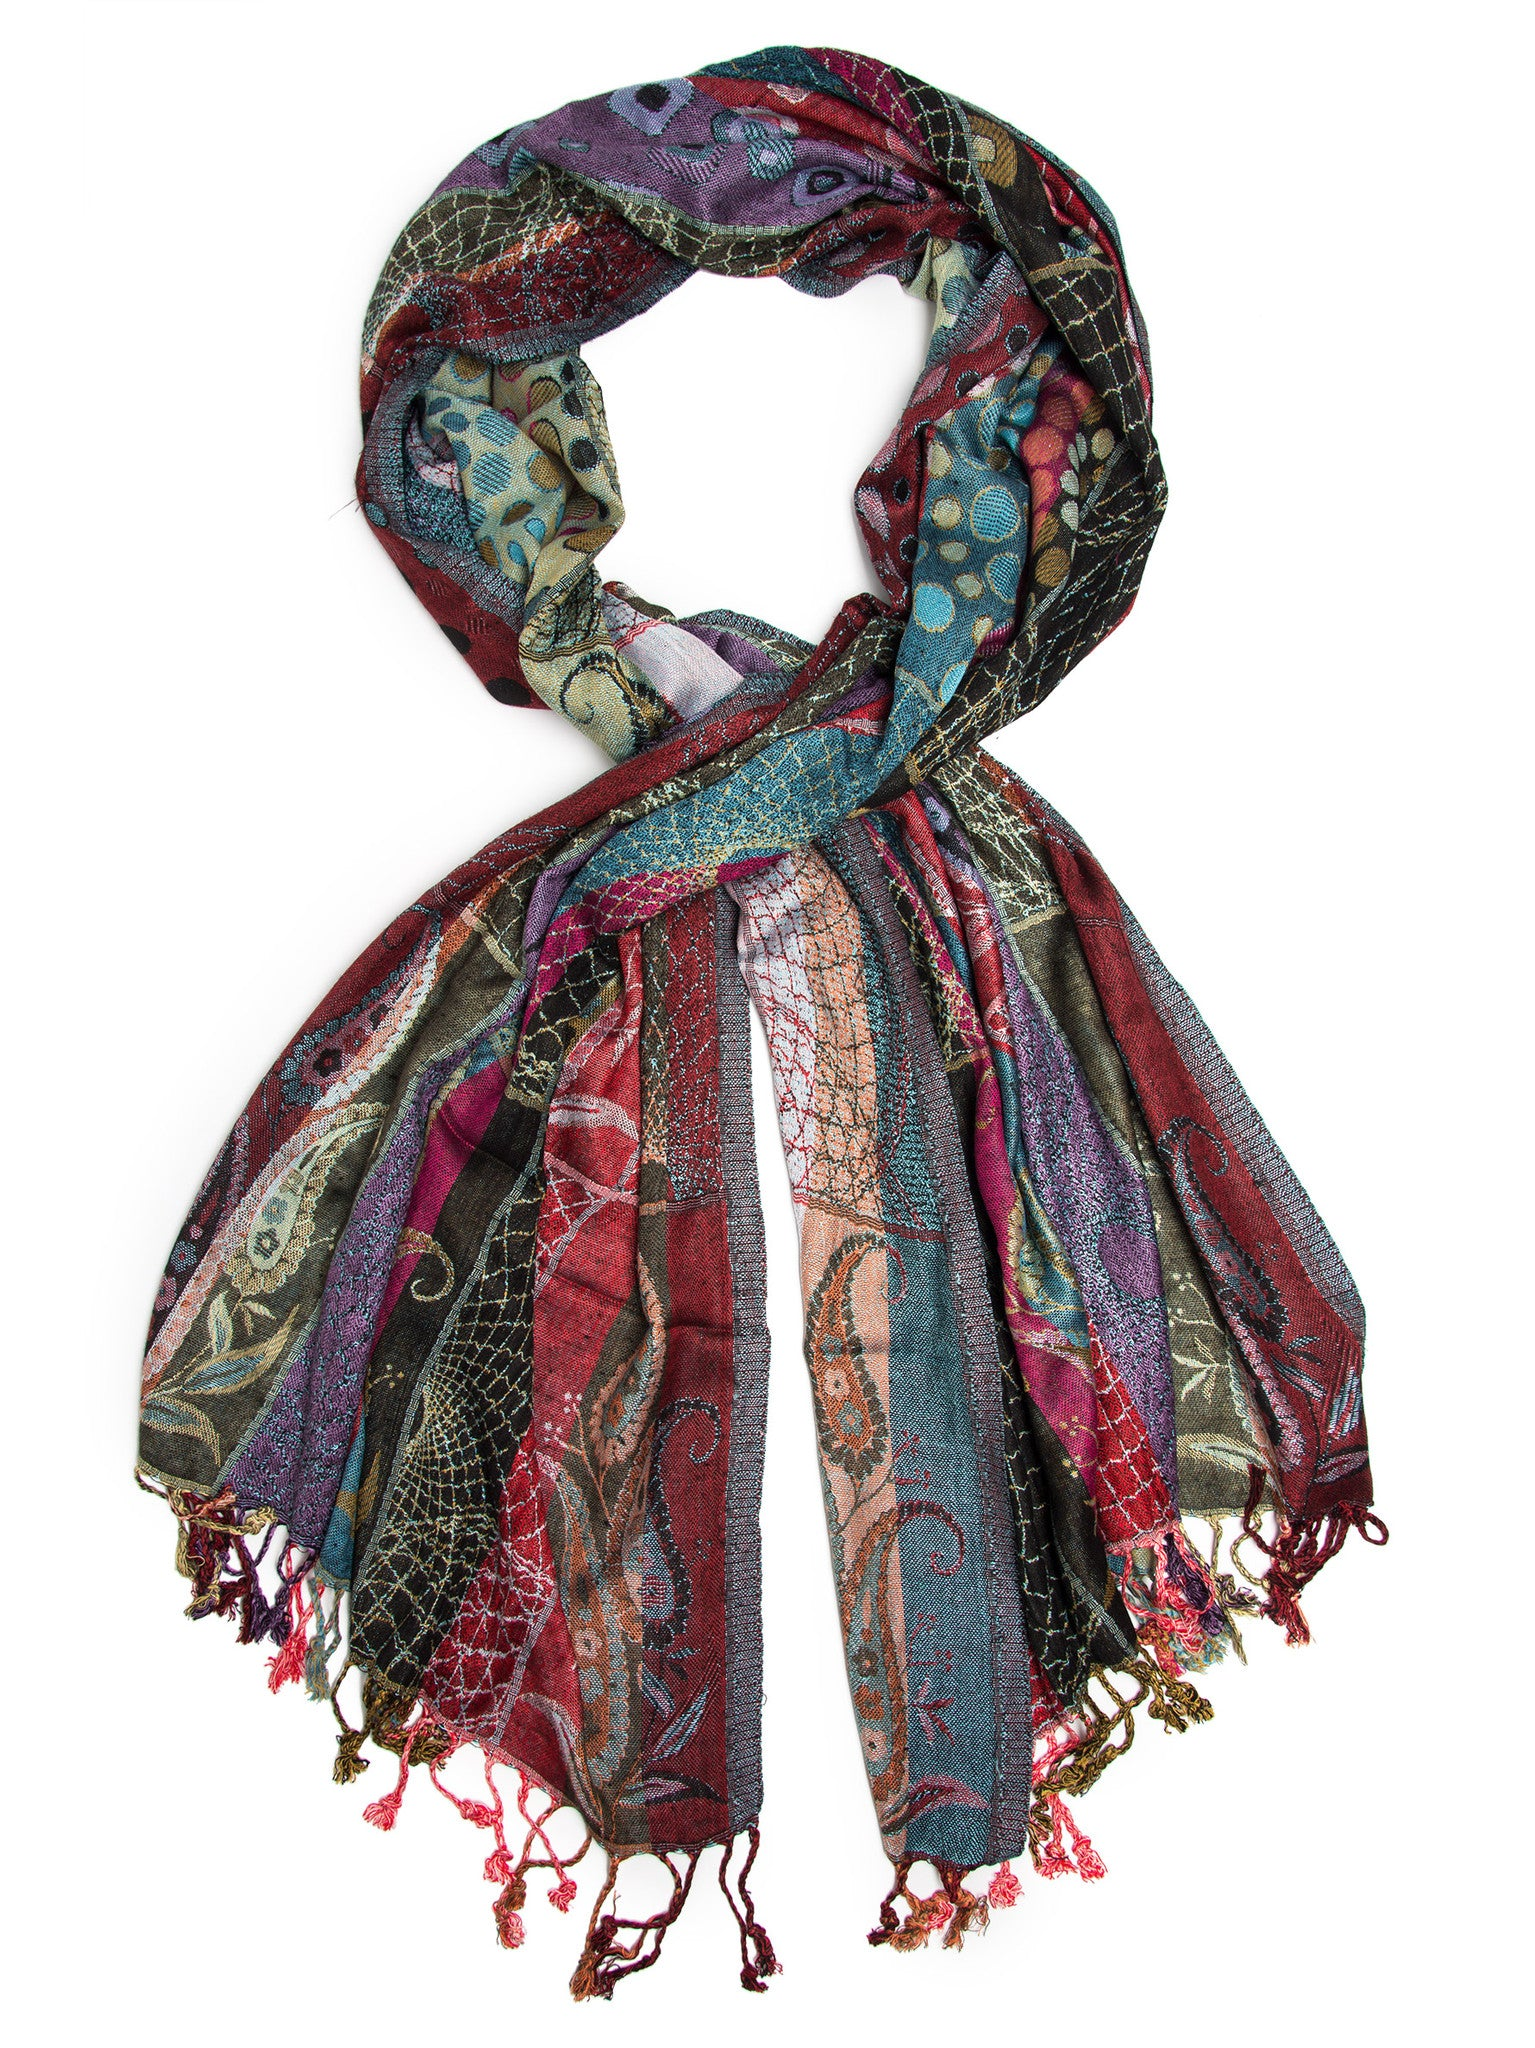 Scarves - Harina Shawl, Woven Reversible Striped Pashmina Scarf, Hand Made in India -(Royal / One Size) Bohomonde  - 1